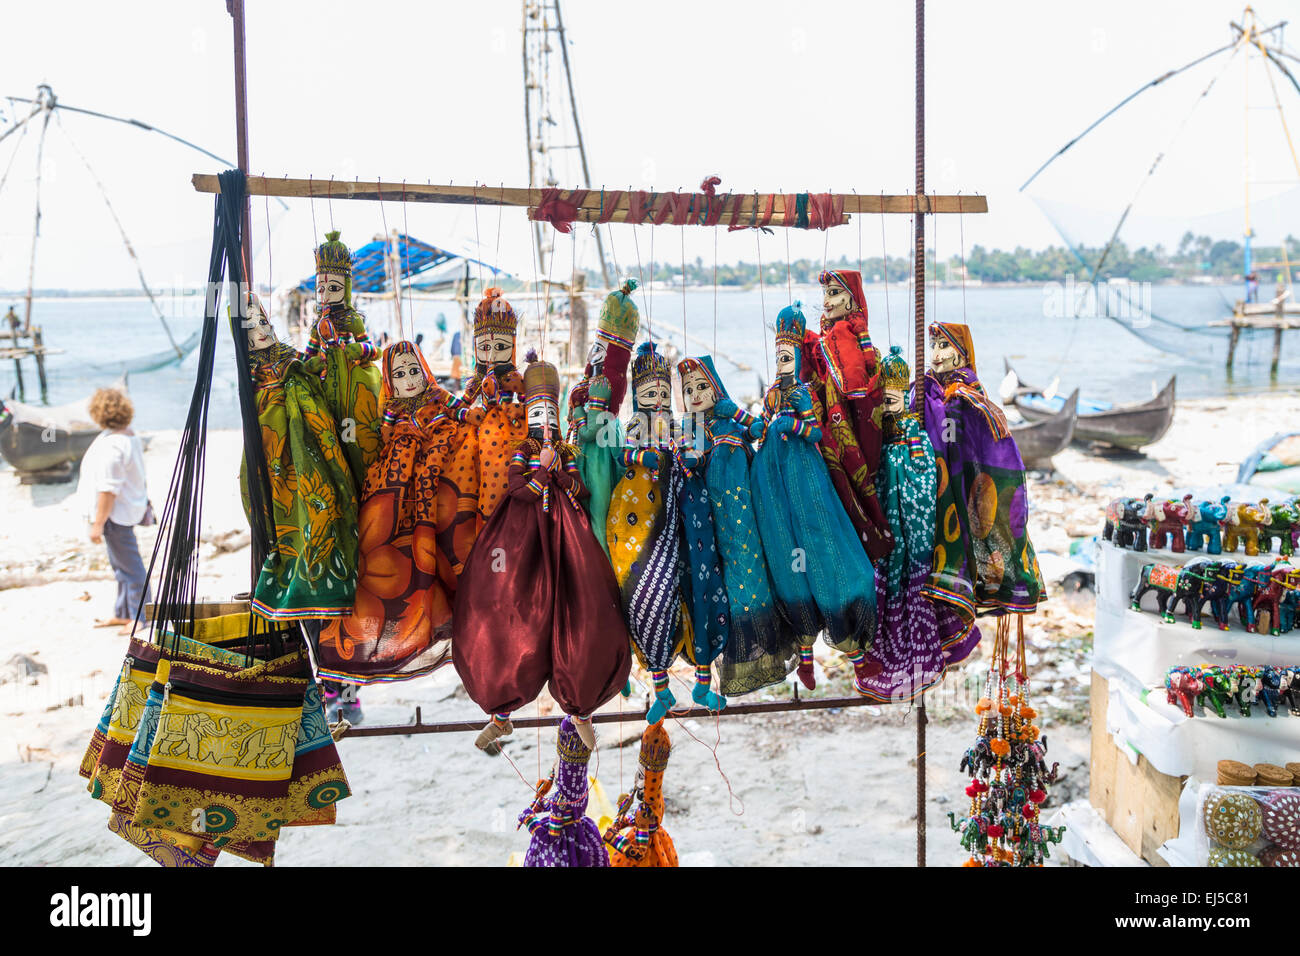 Typical traditional colourful marionette puppets on display for sale as tourist souvenirs on the beach at Fort Cochin, Stock Photo